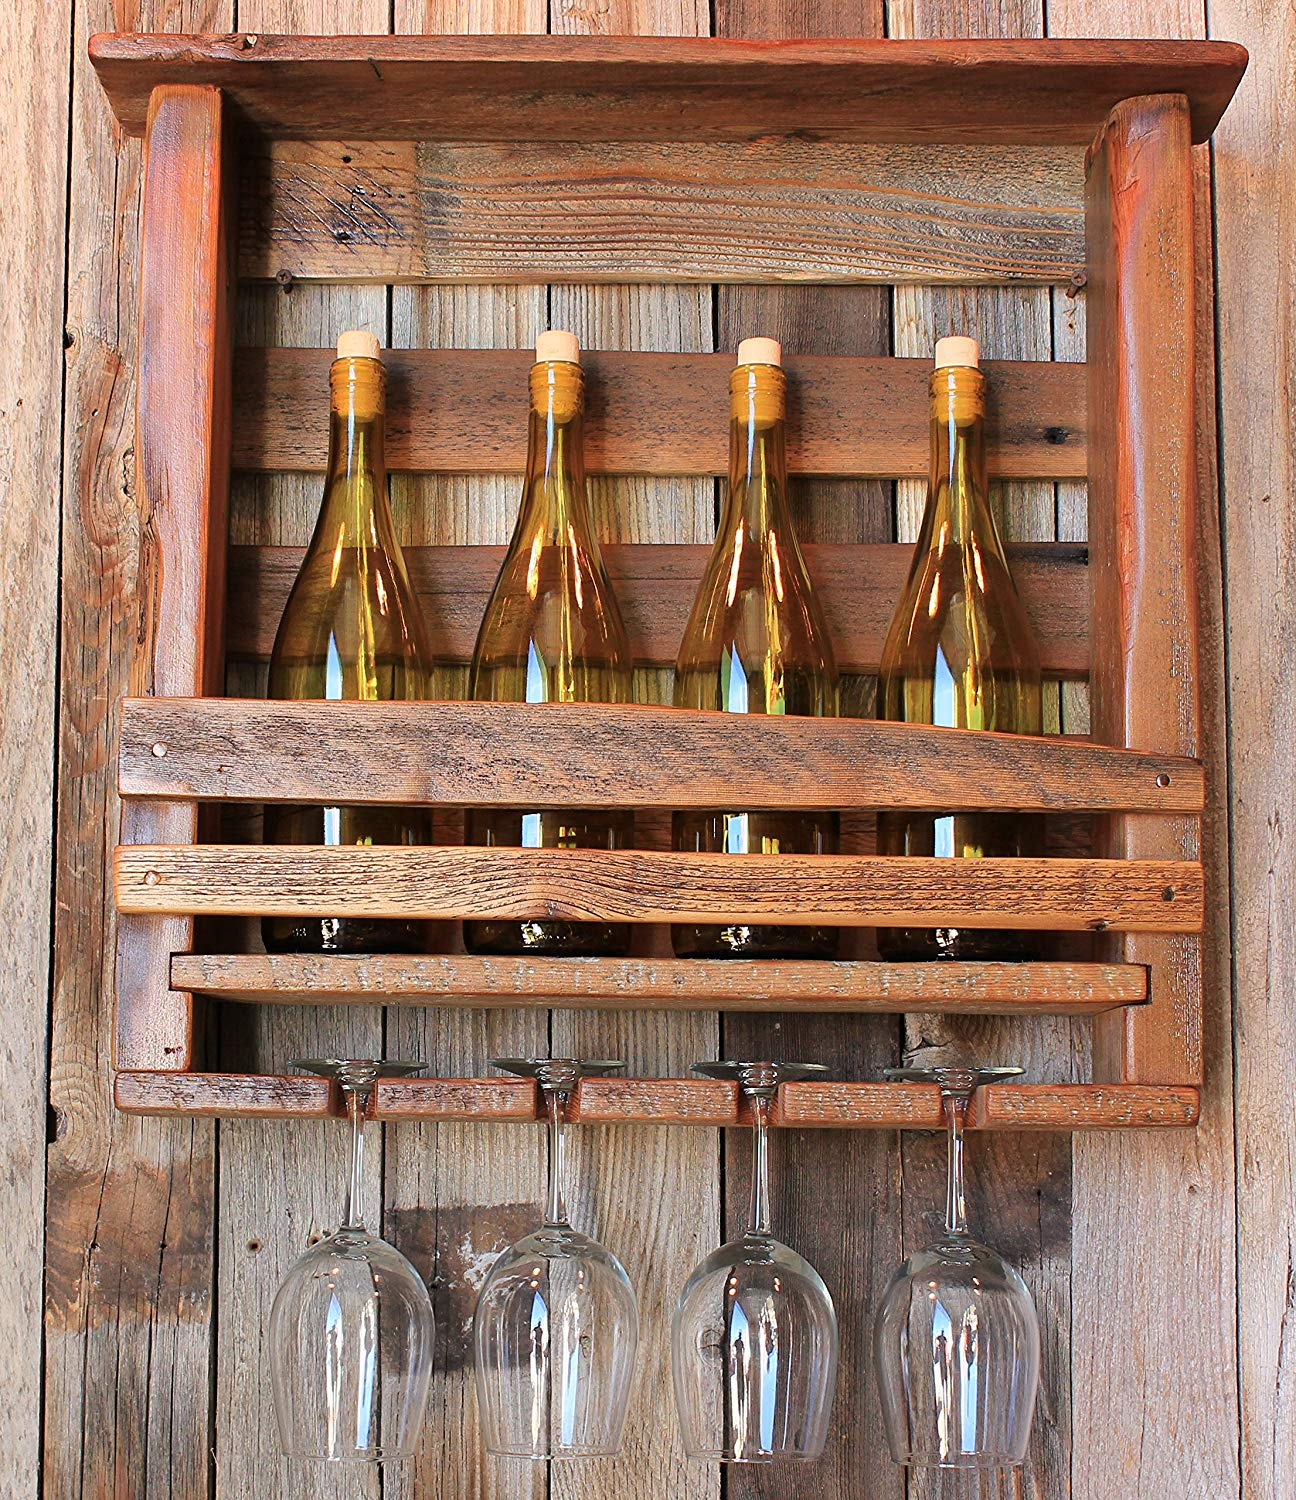 Rundown Rustics Wine Rack Storage Shelf Organizer Display Décor Organizer Cubby Rustic Reclaimed Recycled Upcycled Pallet Barn Wood Bar 4 Bottles Glasses Upright Wall Mount